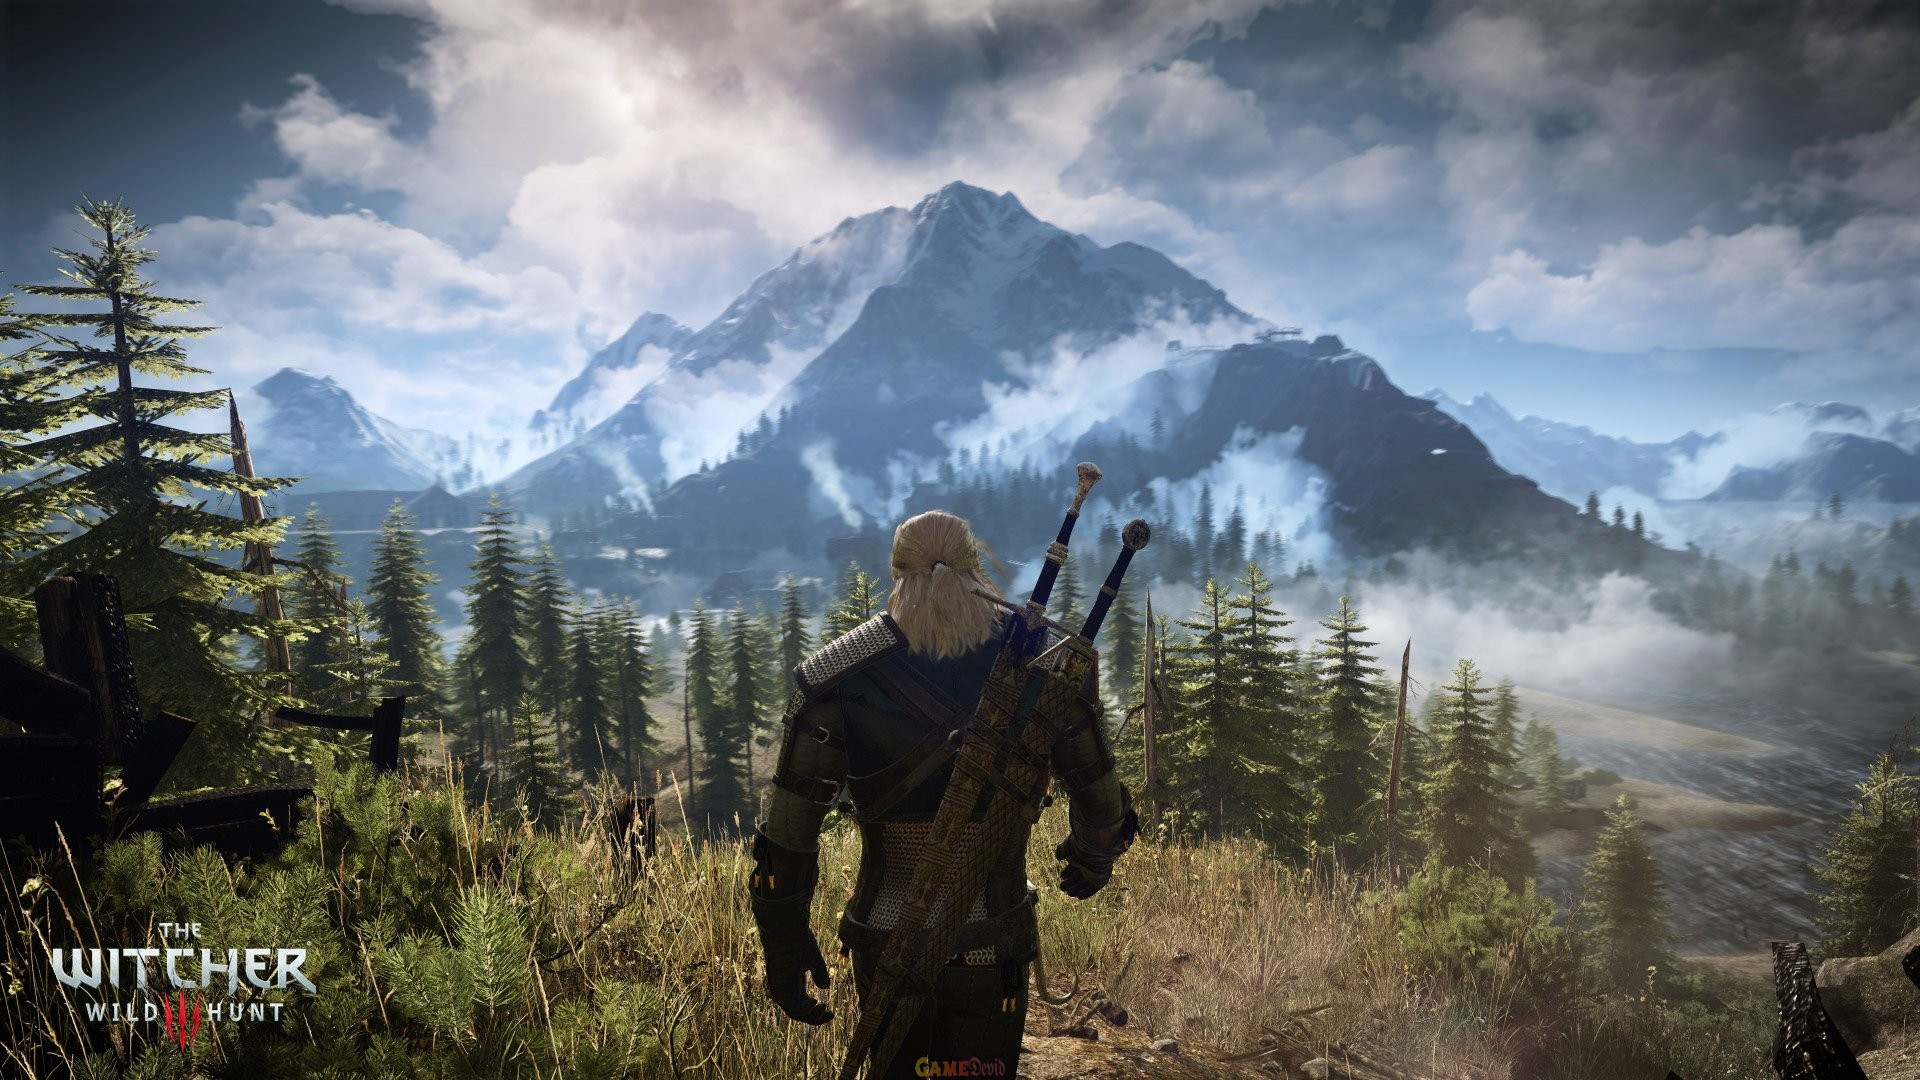 The Witcher 3: Wild Hunt Download Xbox One Game Complete Setup